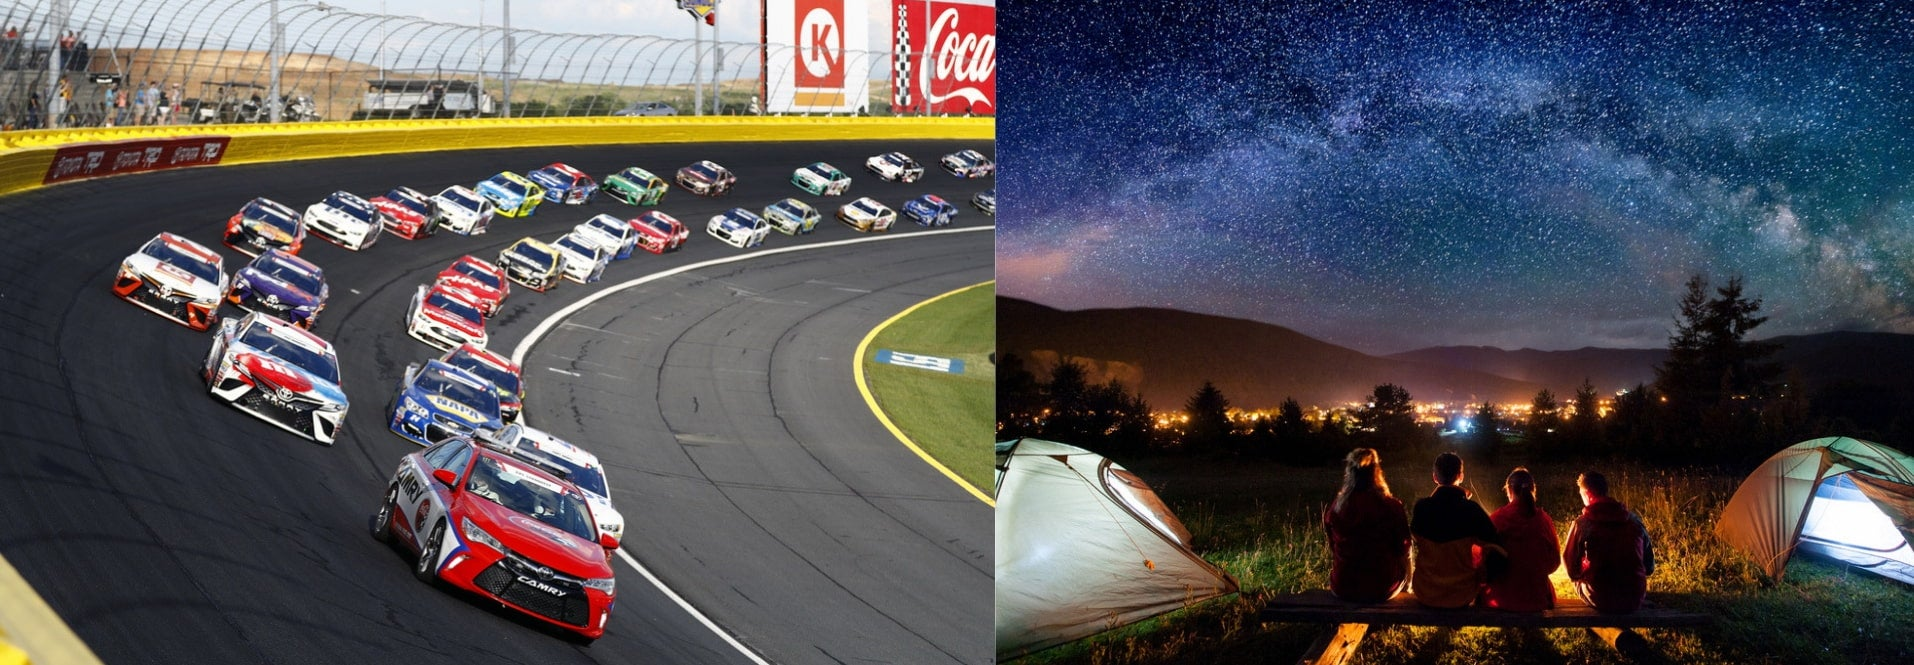 21 Nascar Home Tracks Across The Country That Campers Love To Visit